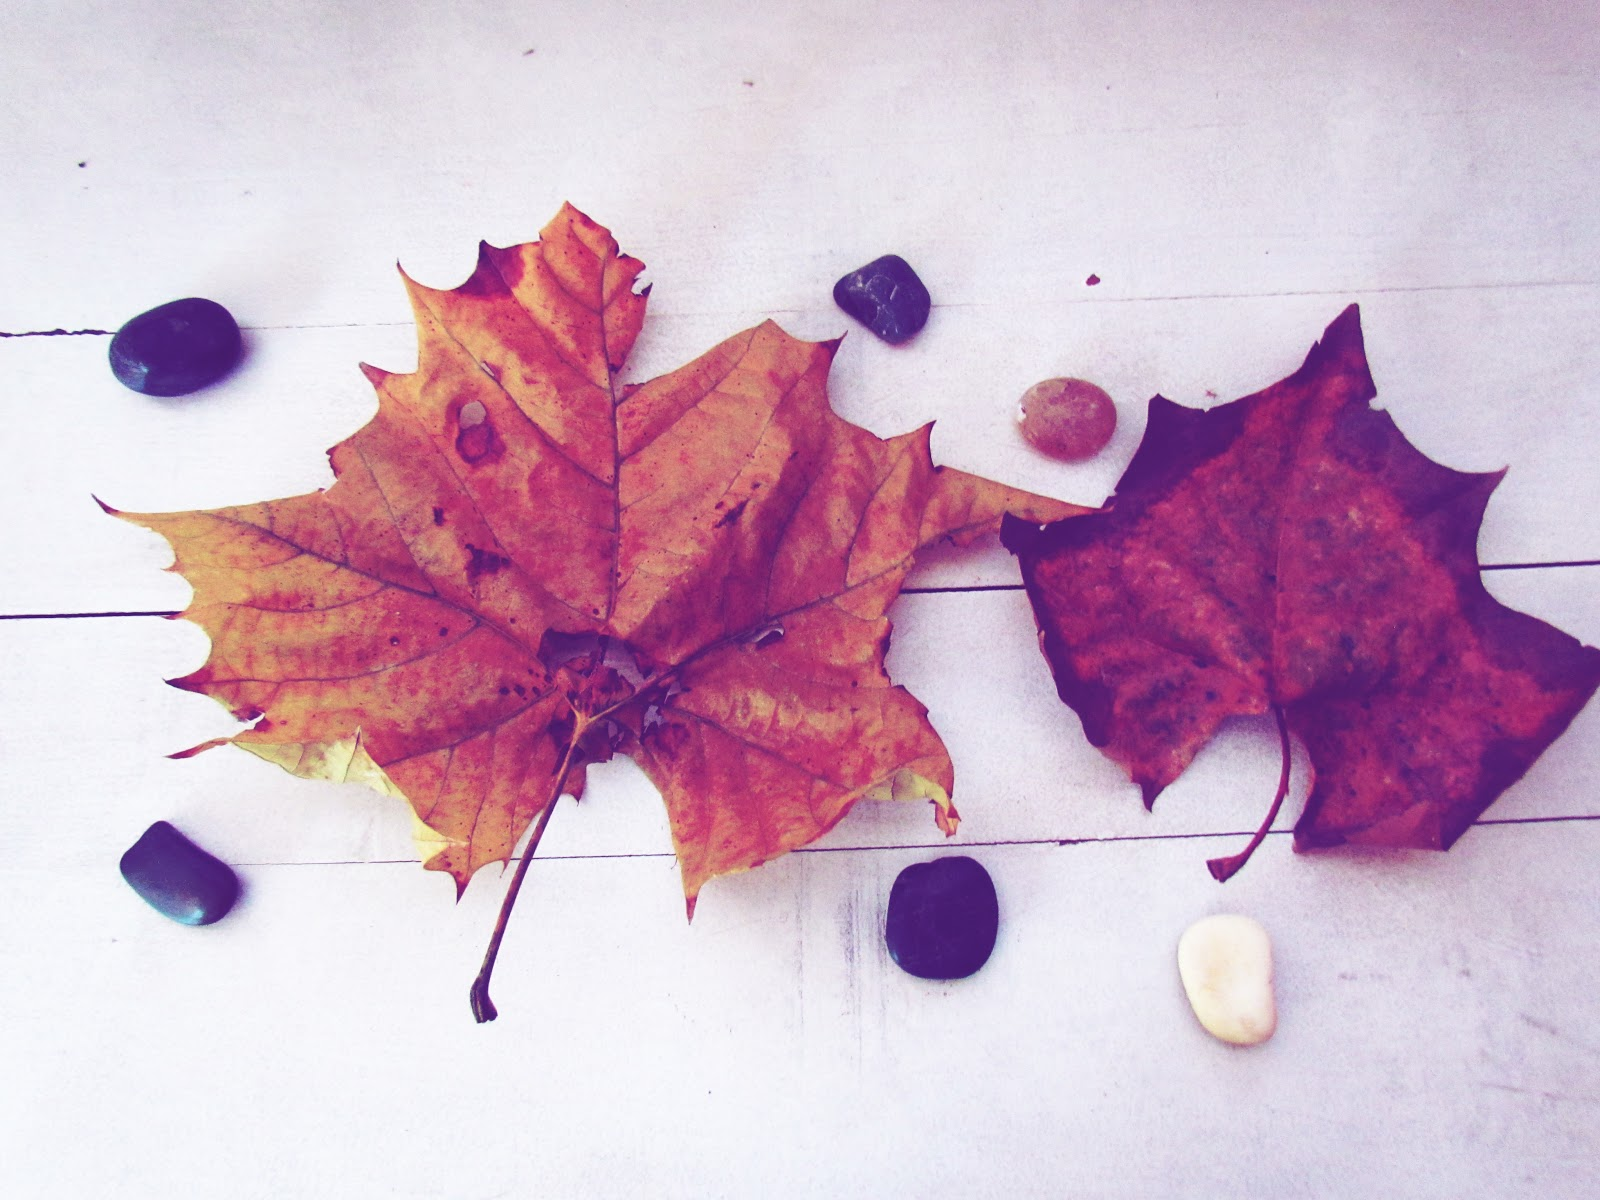 Crisp Fall Leaves in Rustic Colors on White Background + Nature Art Flat Lay